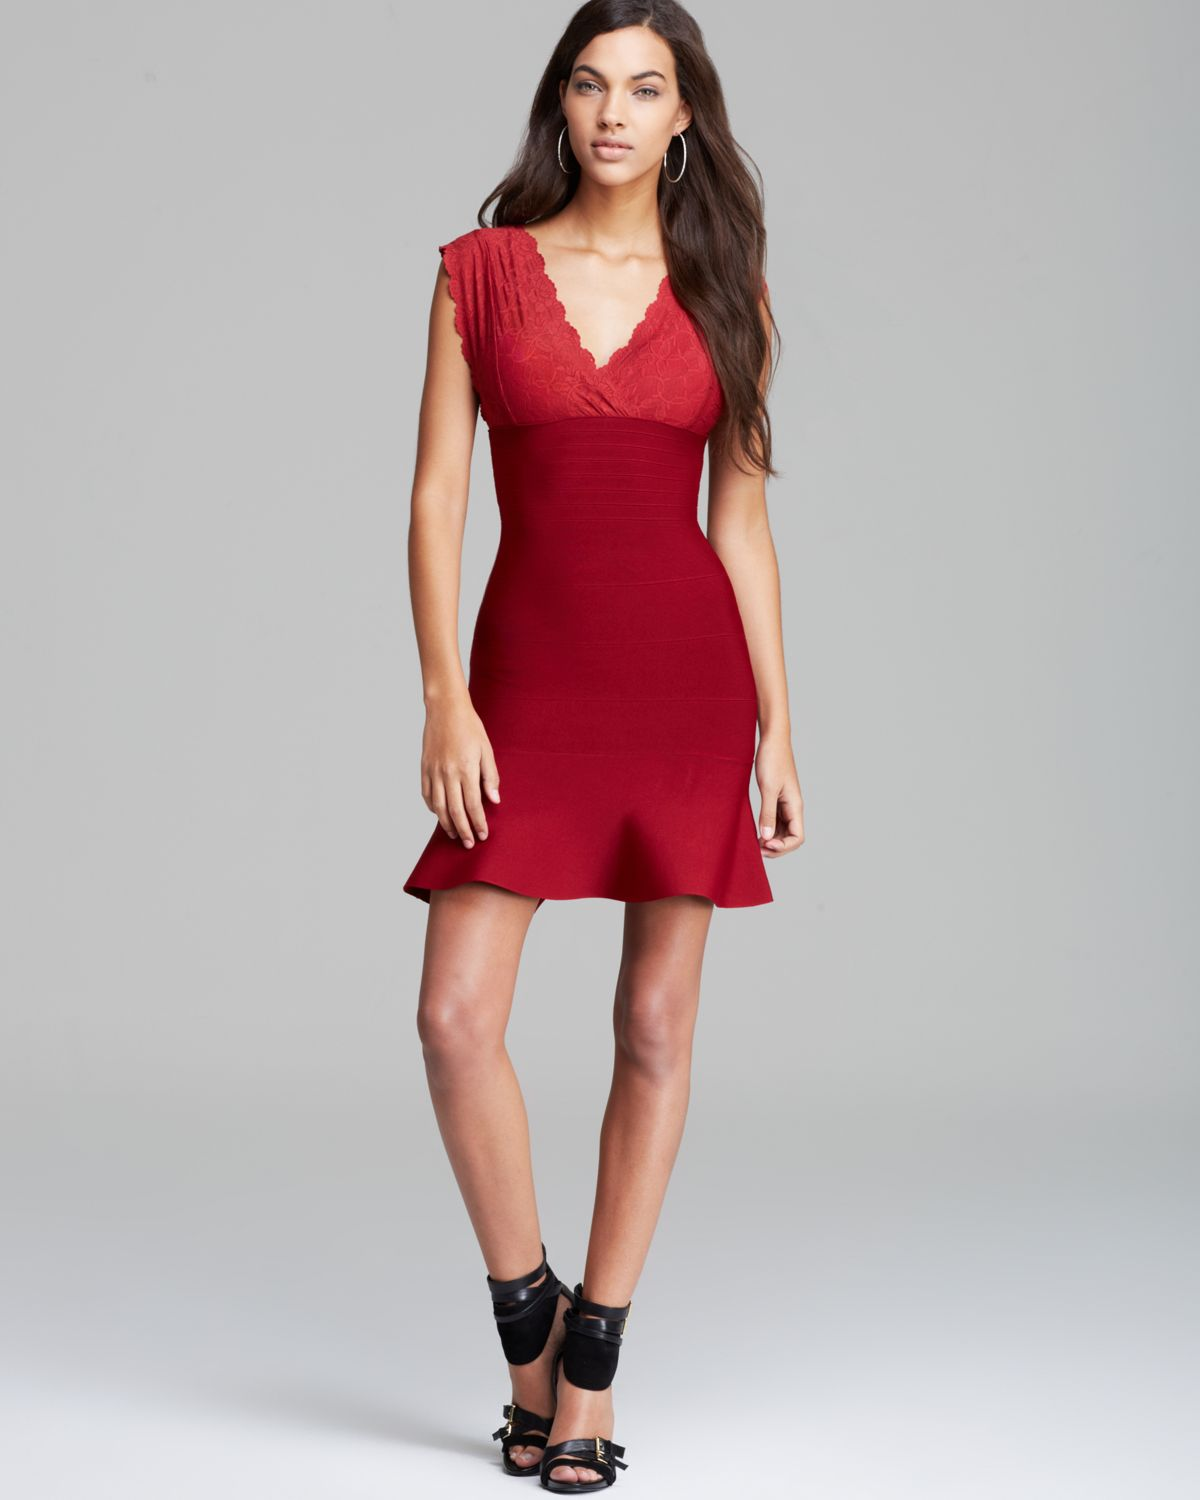 422775d9f6 Guess Dress Lace Bandage Mix in Red - Lyst